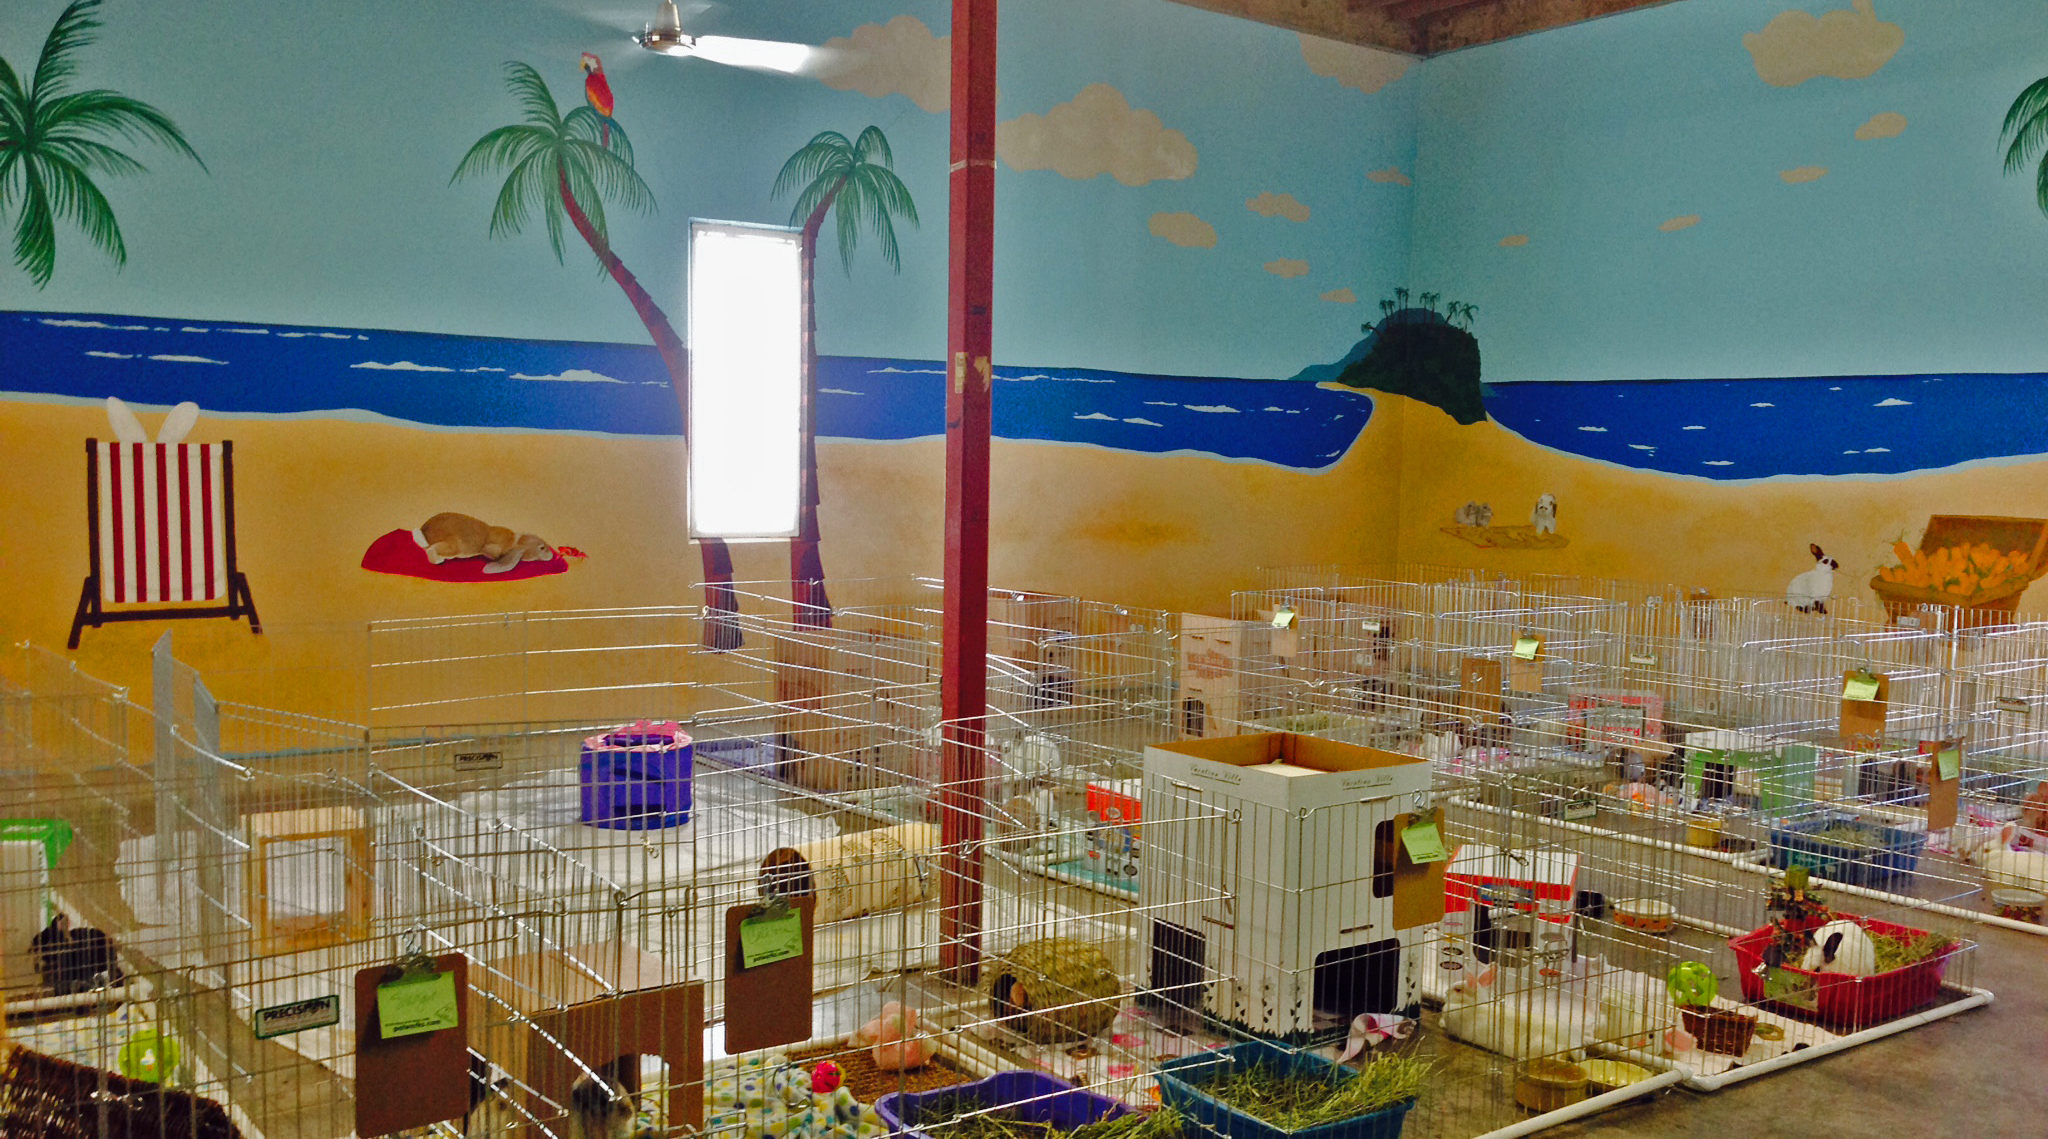 This New, State Of The Art Shelter For Rabbits Showcases Adoptable Rabbits  In A Homelike Setting And Educates The Public On How To Properly House And  Care